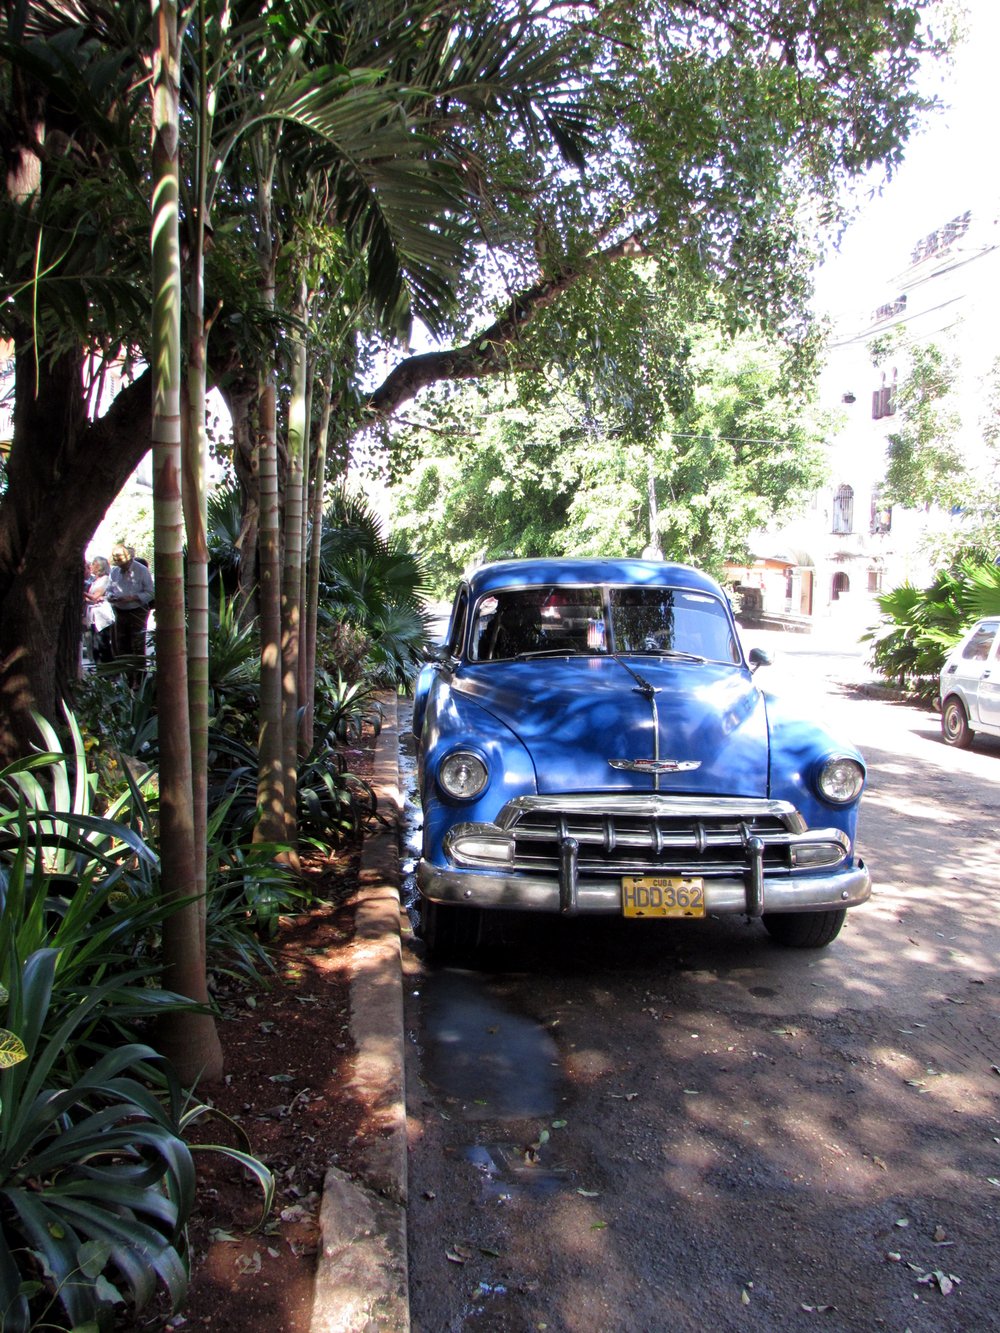 The average car in Havana